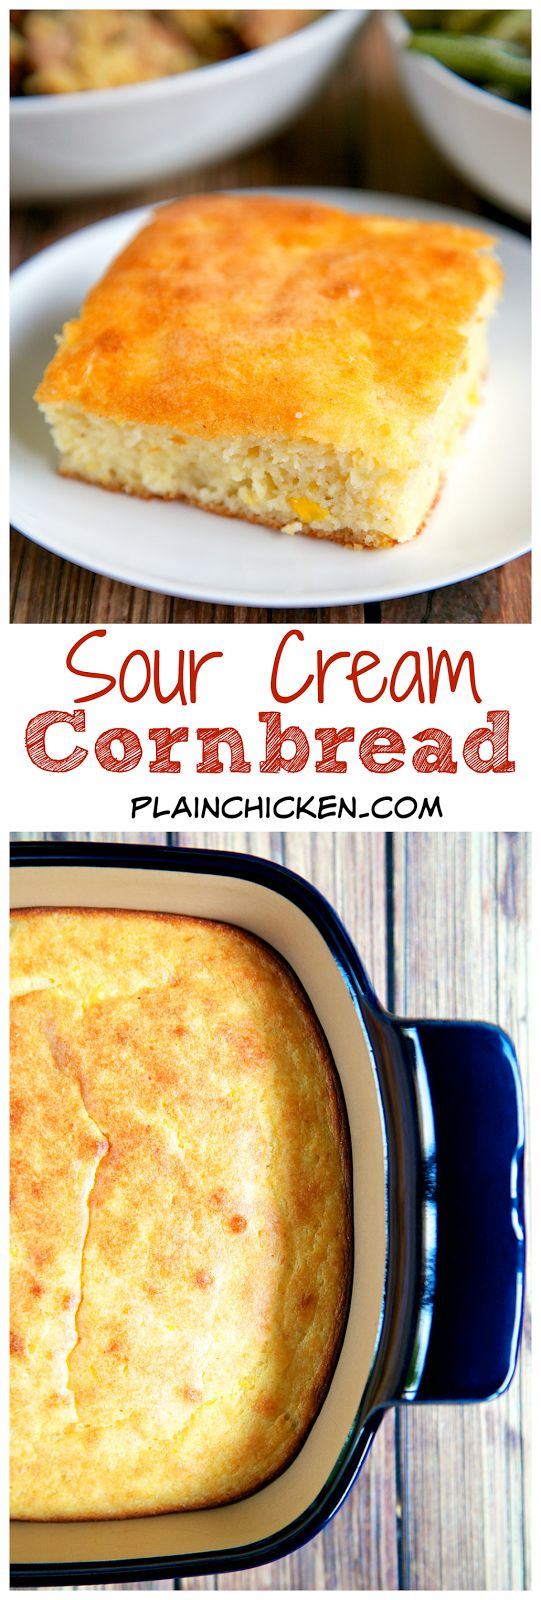 25+ Best Ideas about Cornbread Recipes on Pinterest | Easy ...